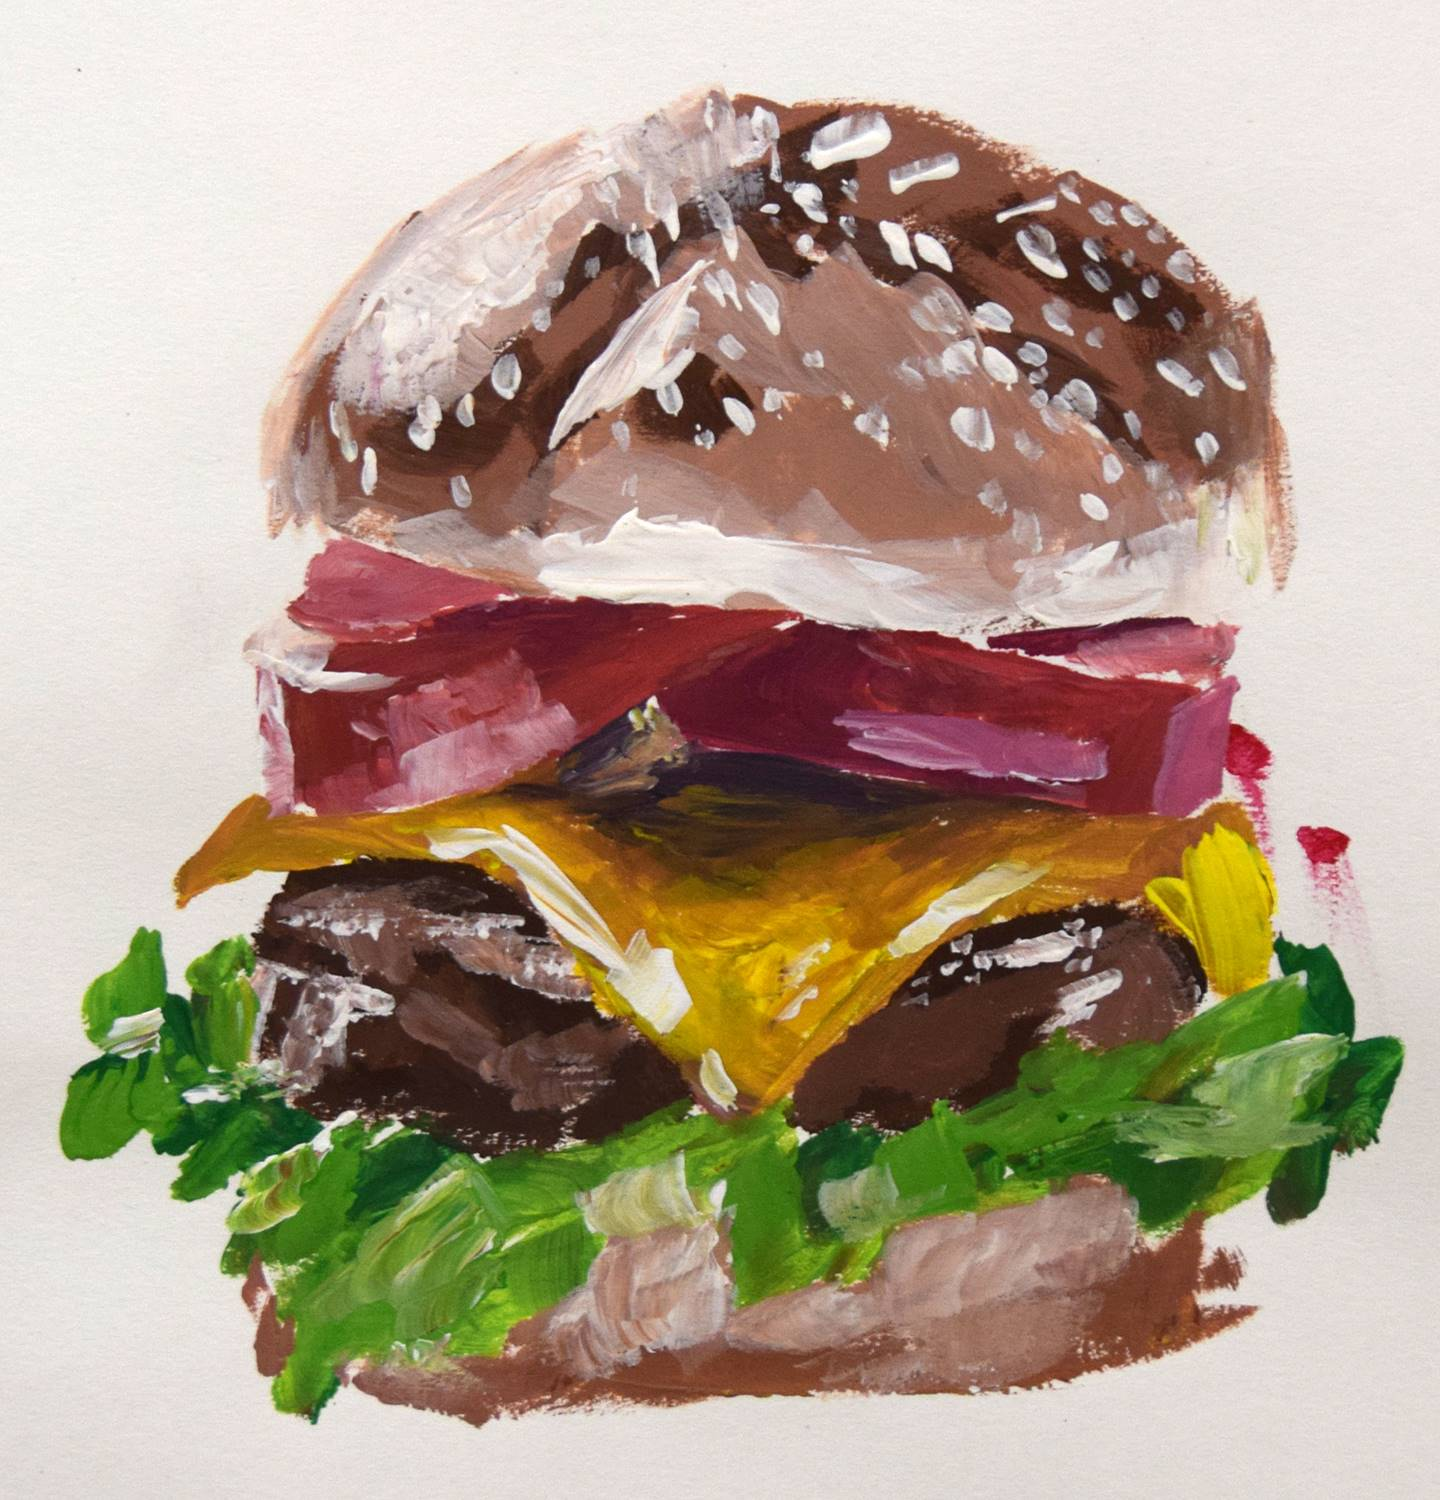 A hamburger with lettuce, cheese and tomatoes, painted by Vestal High School student Wyatt Zindle.